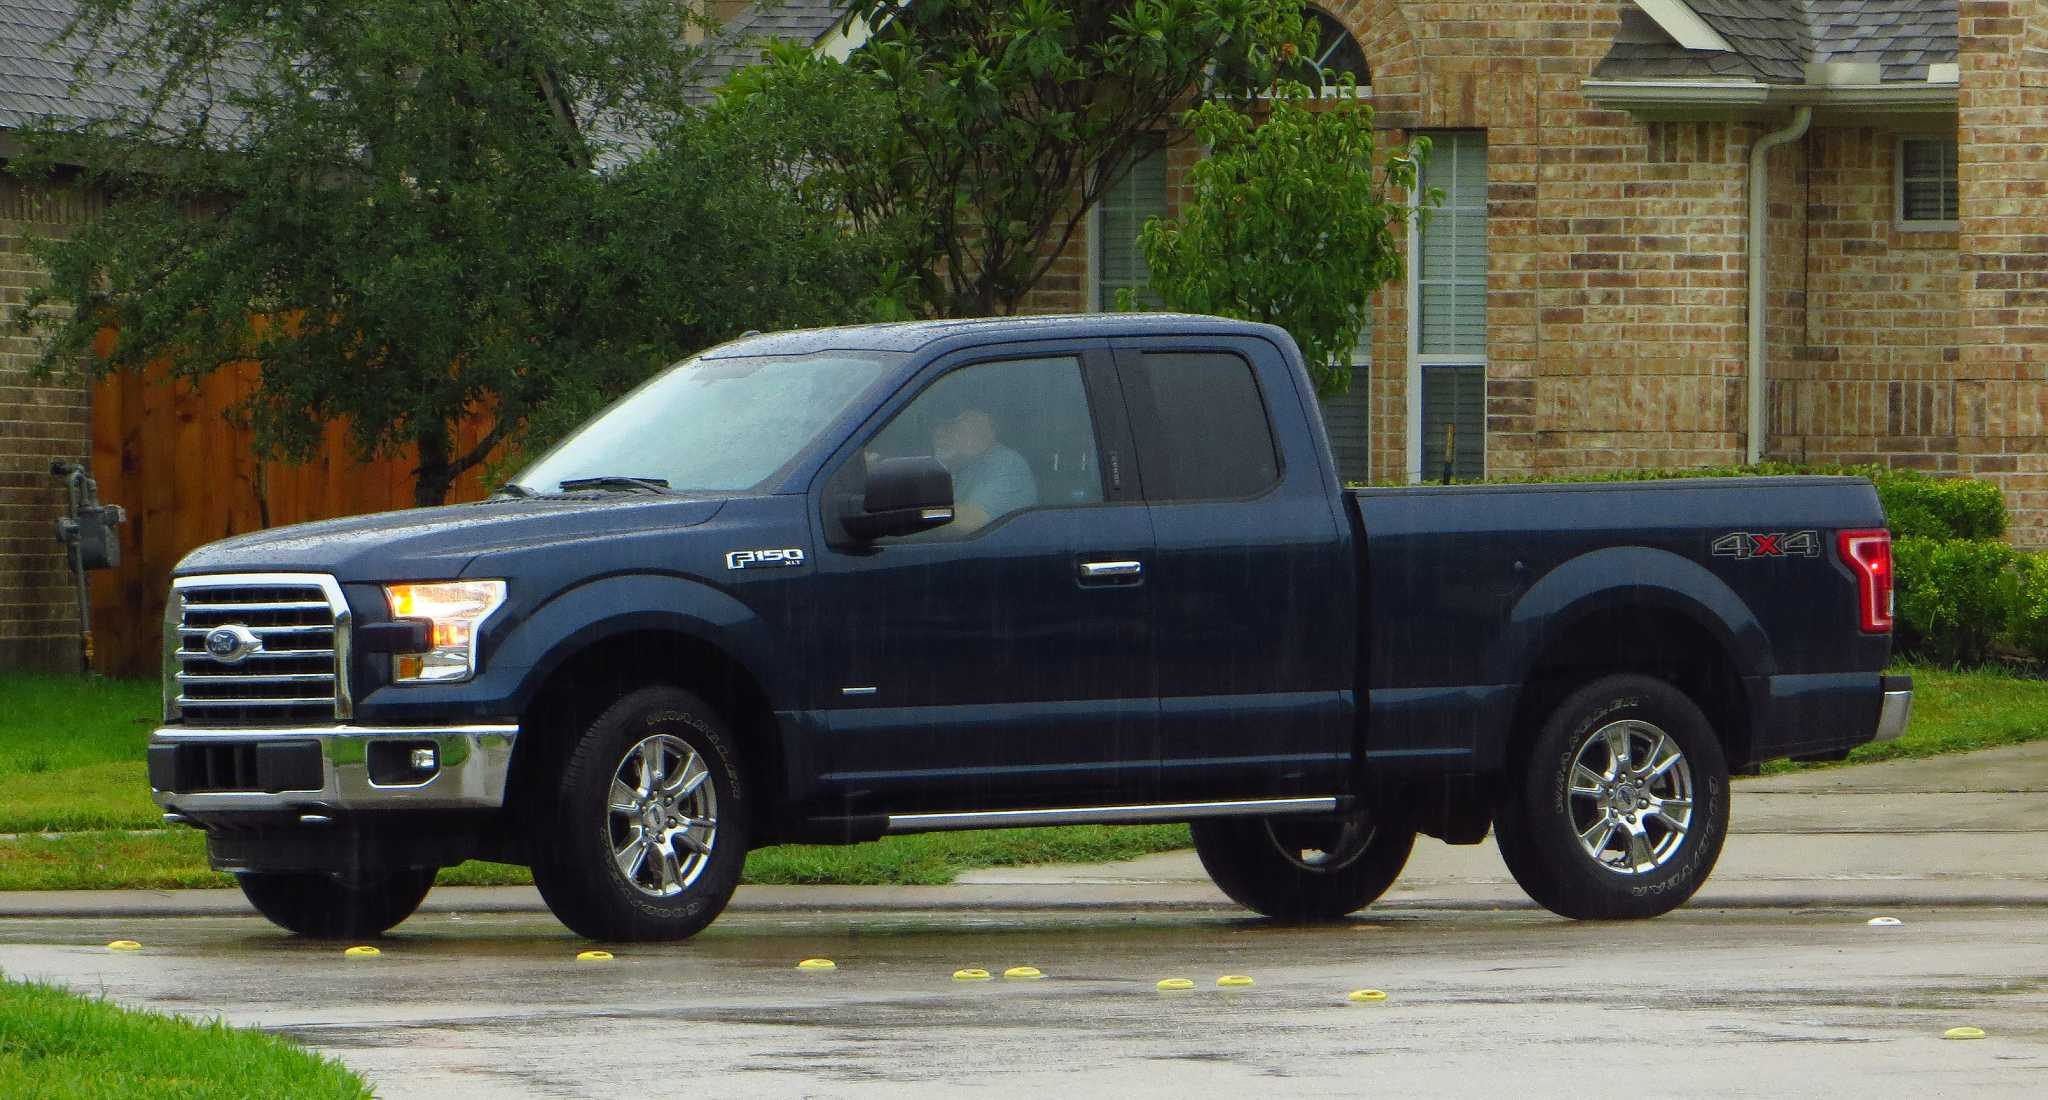 Tiny turbocharged 2.7 V6 delivers V8 performance in 2015 F-150